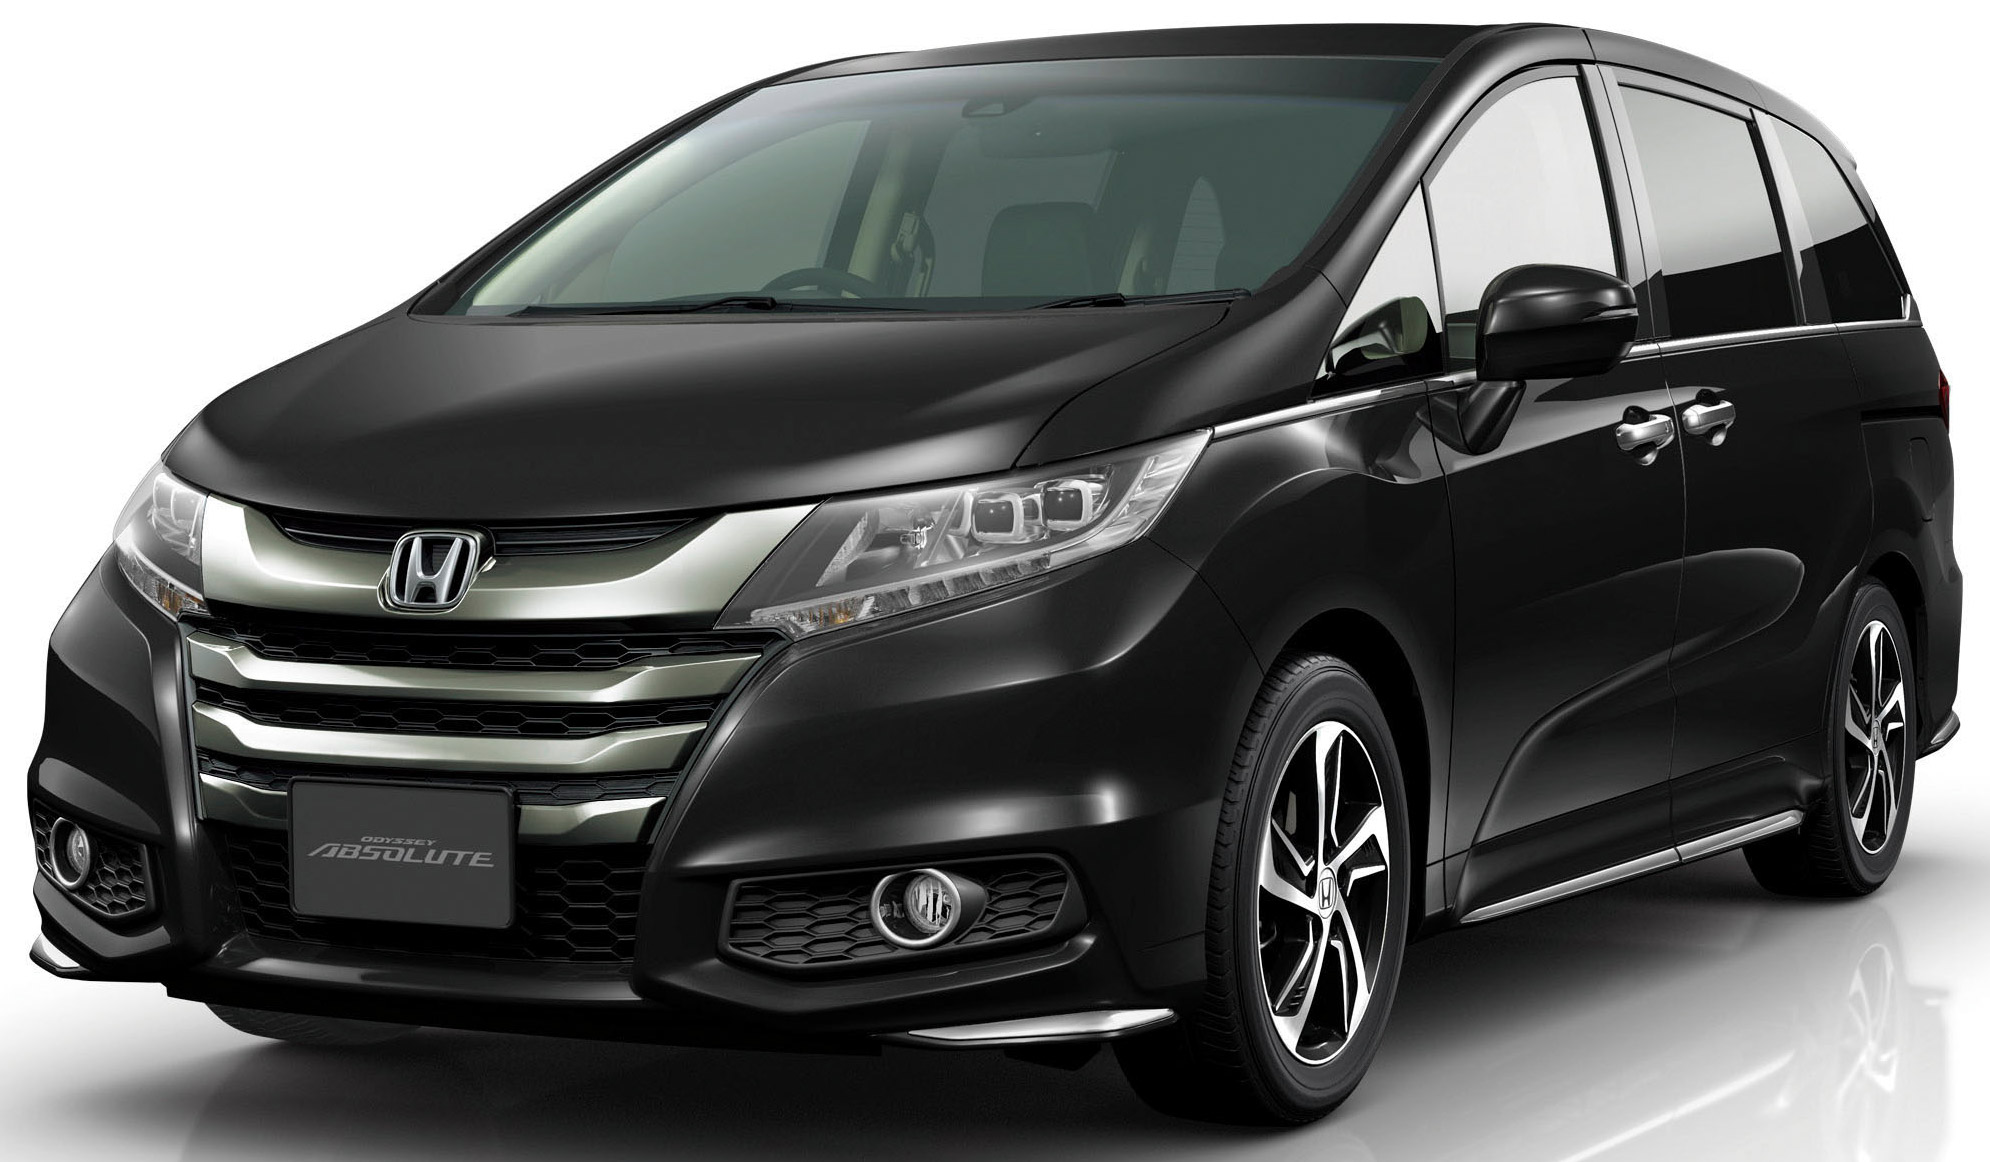 honda odyssey hybrid refresh goes on sale in japan image 438316